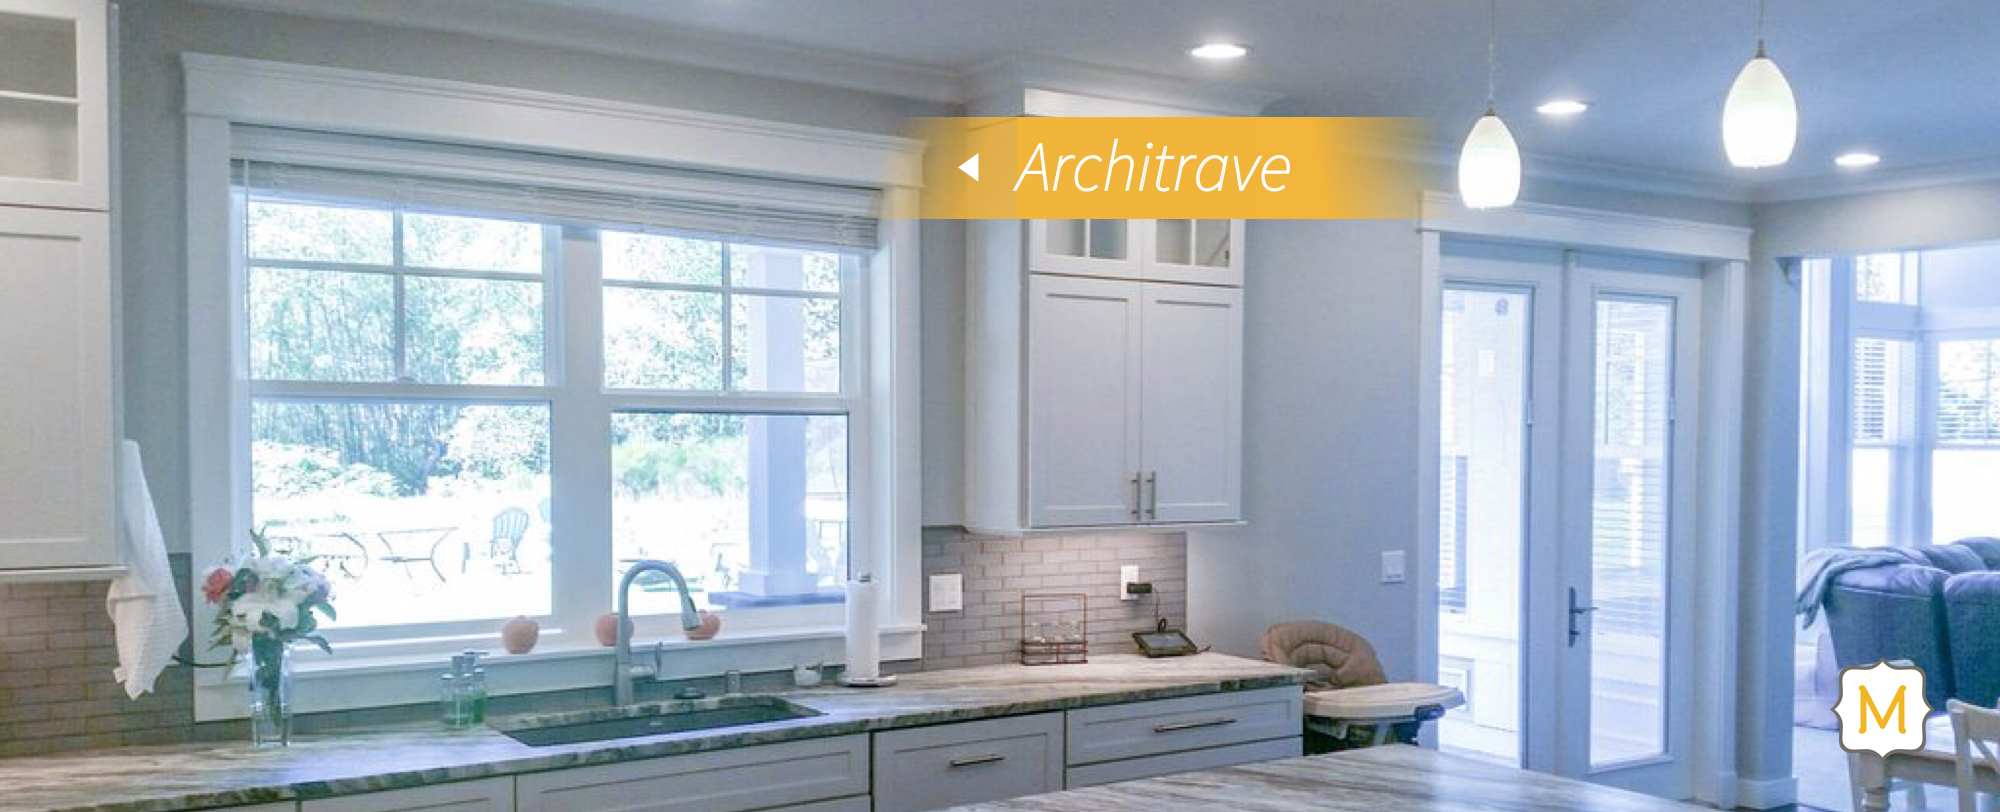 10 Inspiring Windows Amp Doors With Architrave Mouldings